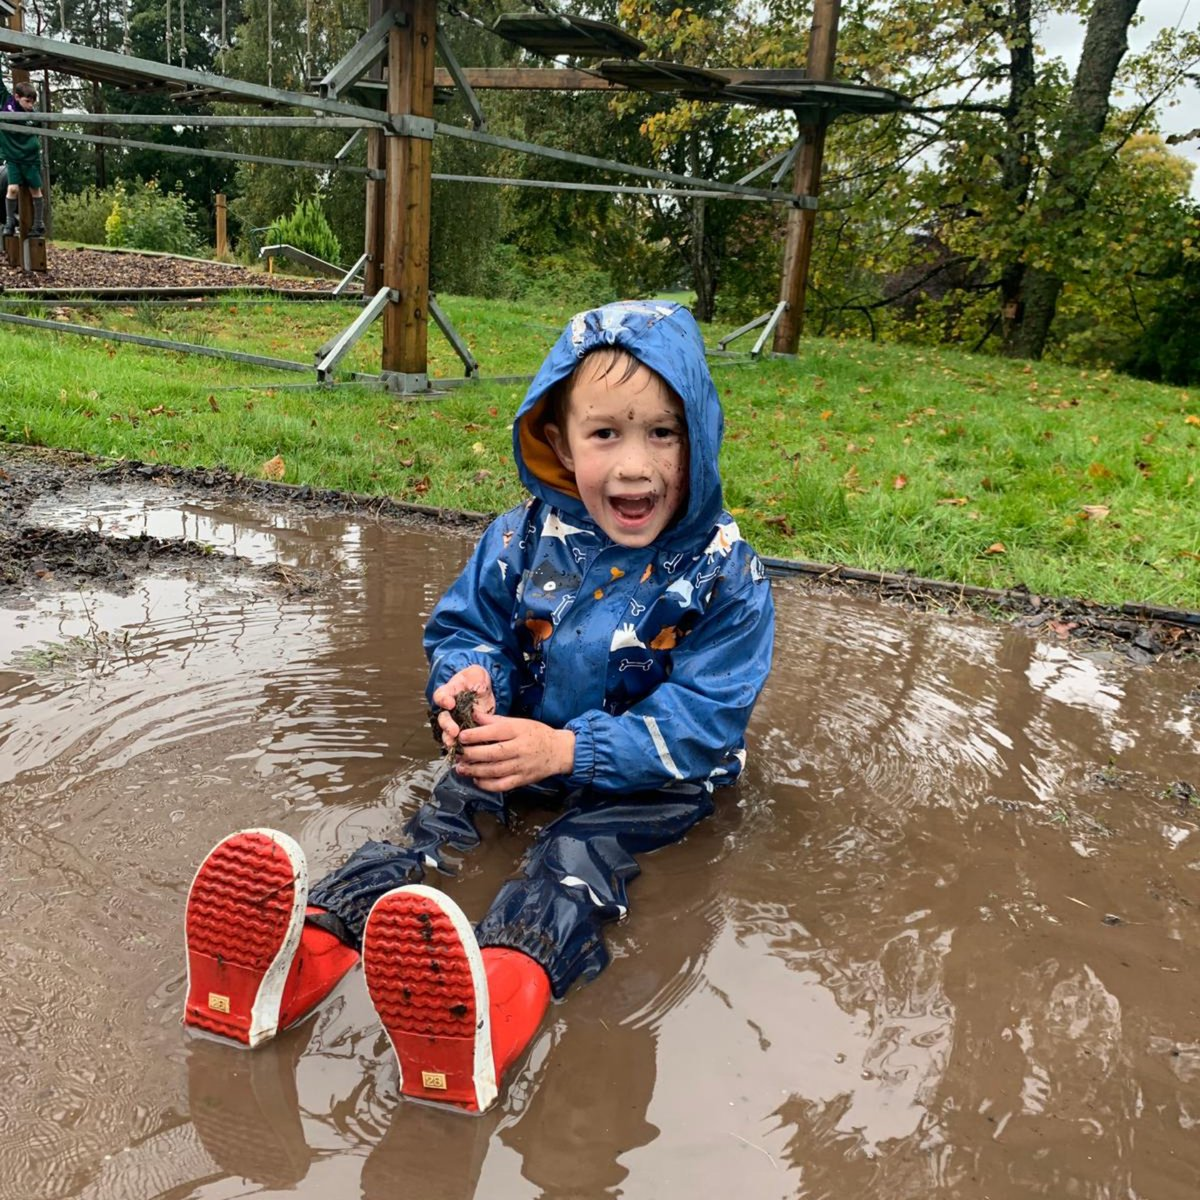 The rain has now stopped and our youngest pupils have already been outside to take advantage of the enormous puddles! #muddy #handsonlearning #lovenature https://t.co/je9b0imeIv